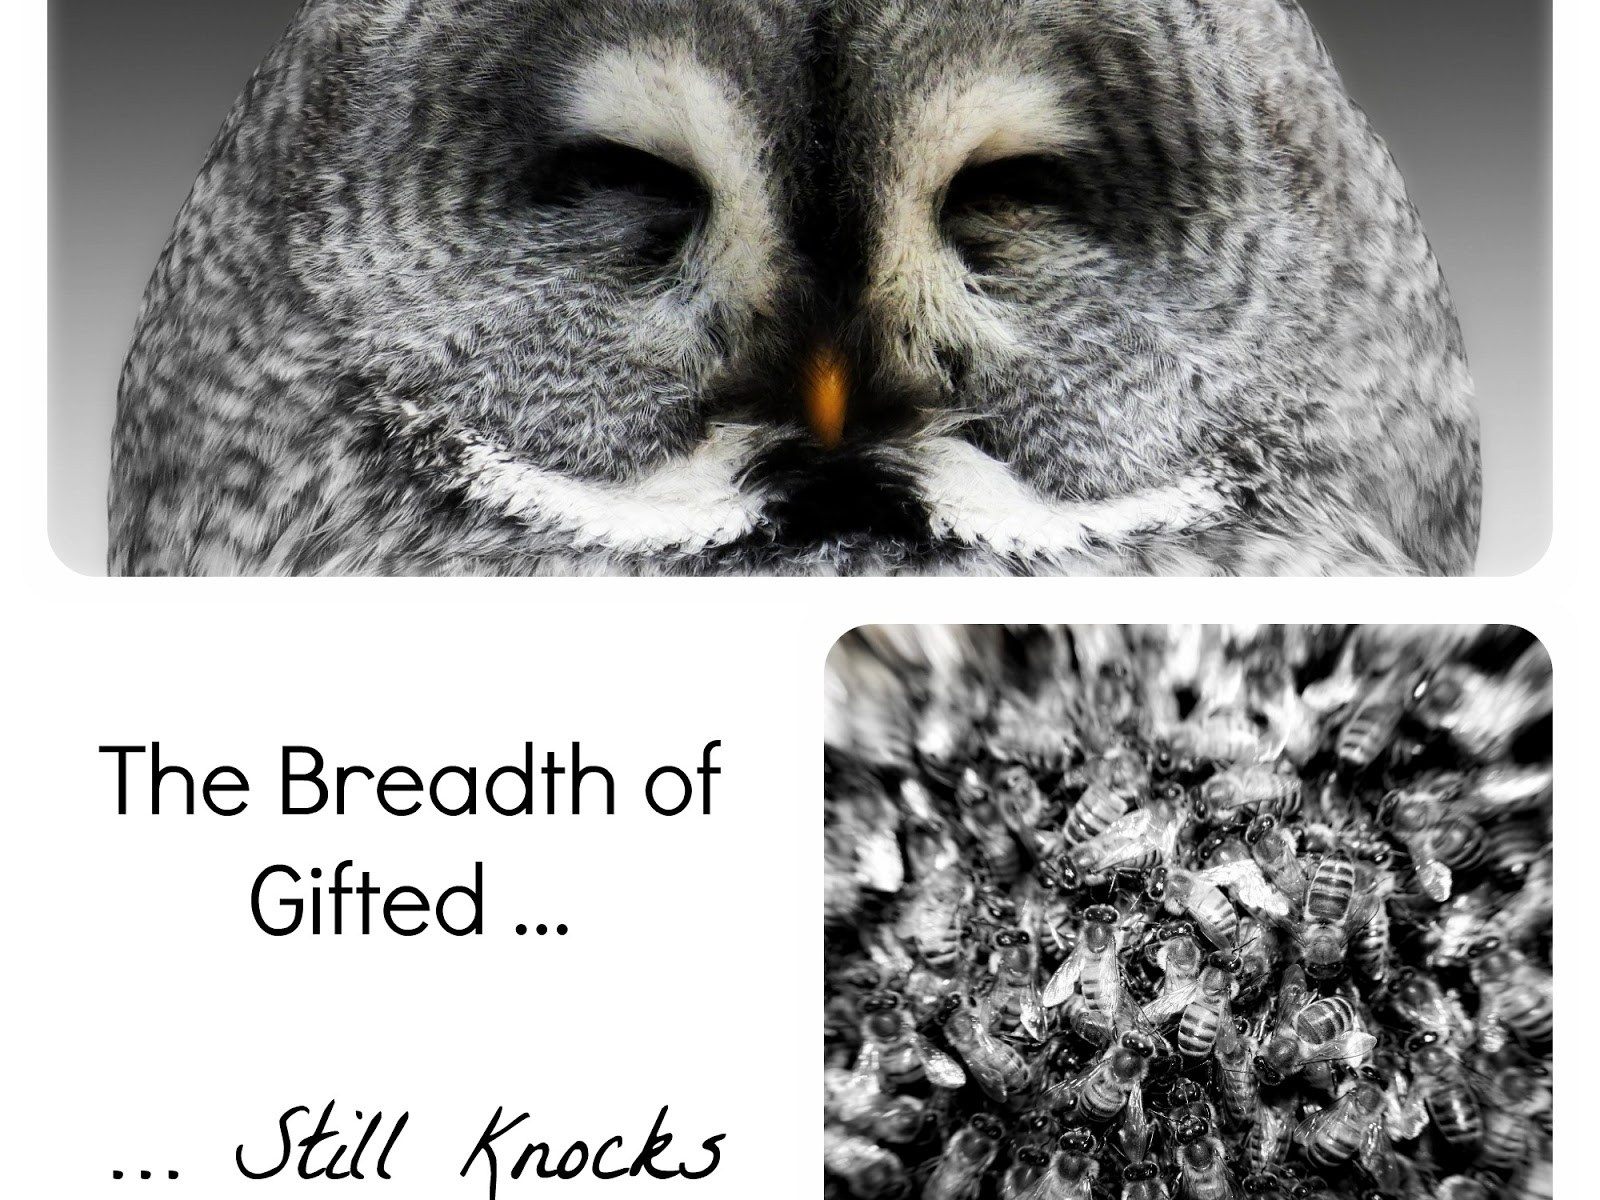 The Breadth of Gifted Still Knocks Me Flat, yellowreadis.com Image: A grey owl, and bees